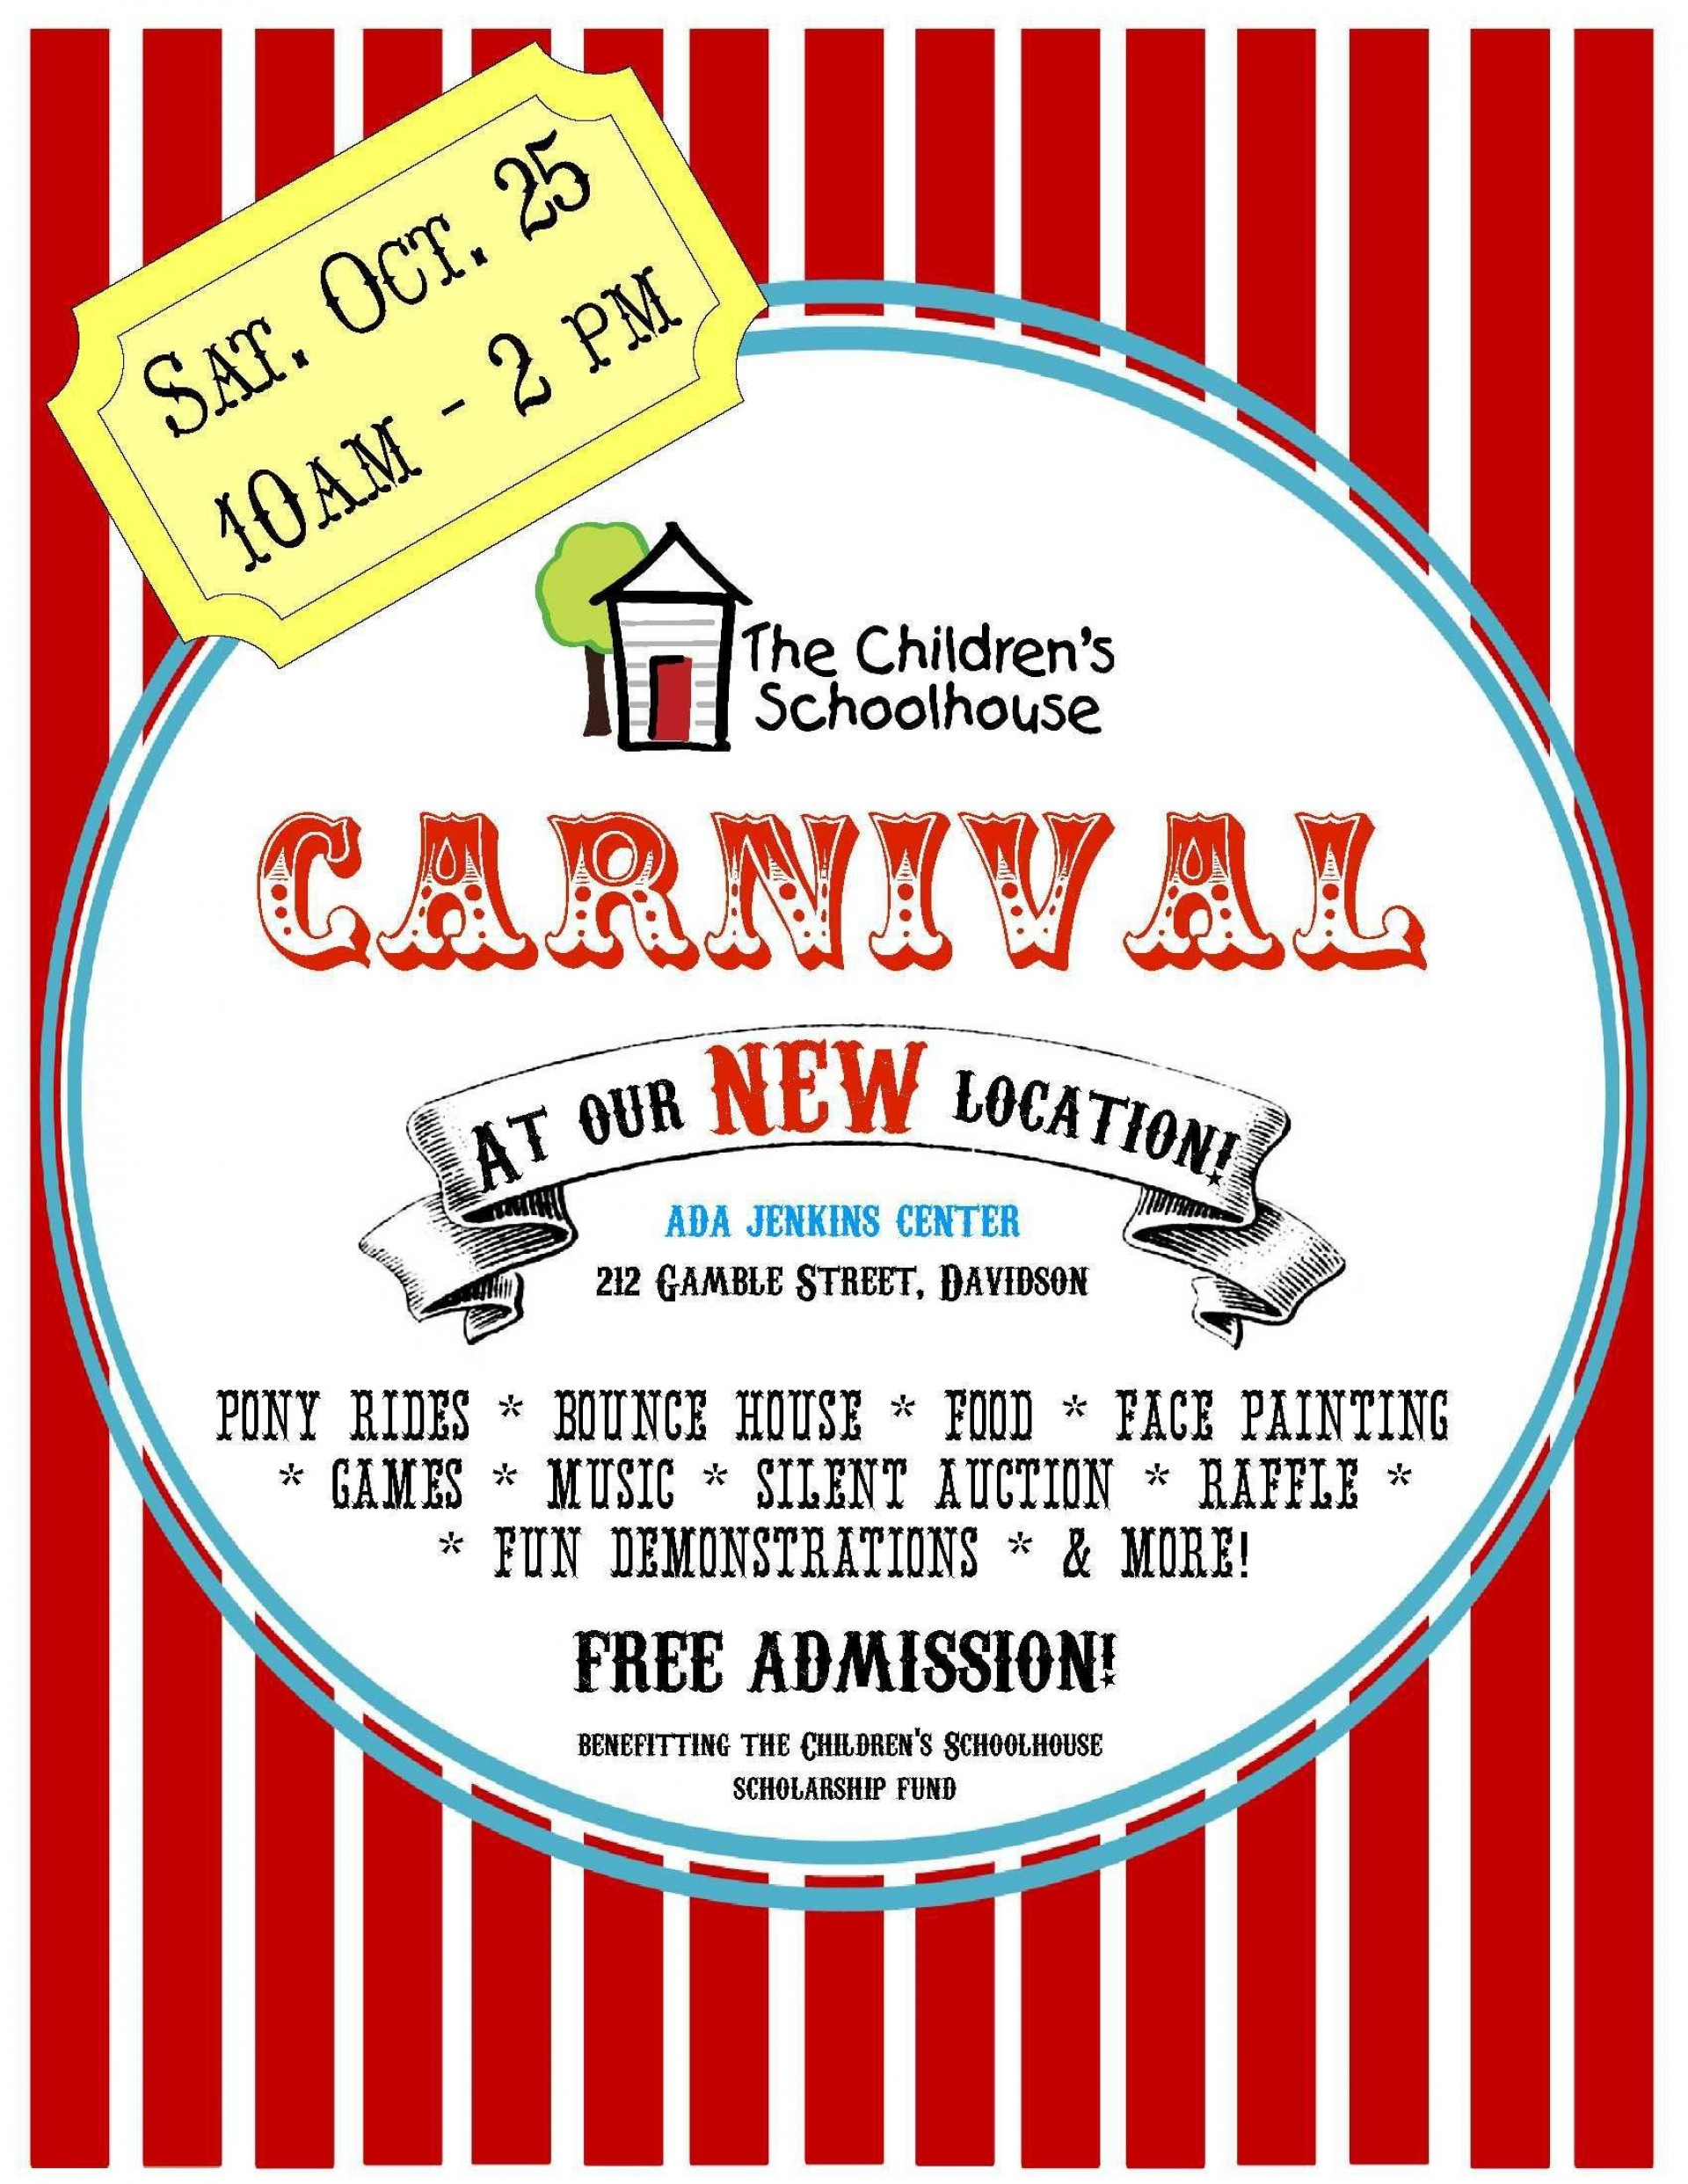 006 Stunning Free School Carnival Flyer Template Example  Templates Download1920